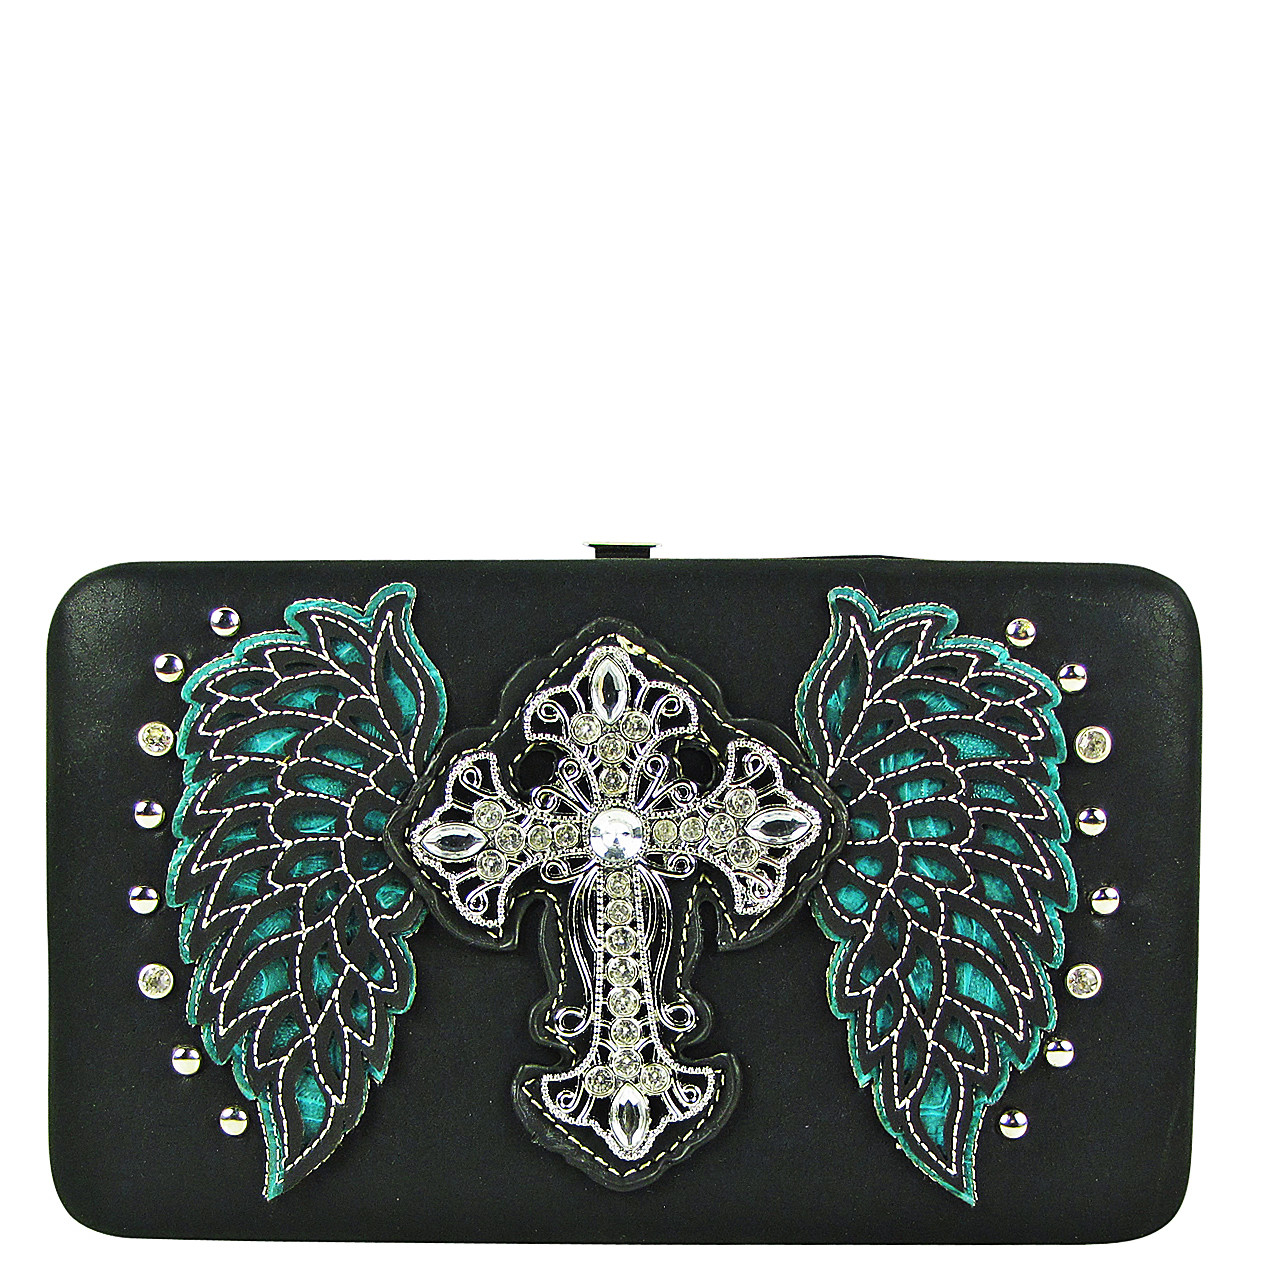 TURQUOISE STUDDED RHINESTONE CROSS WITH STICHED WINGS LOOK FLAT THICK WALLET FW2-04128TRQ